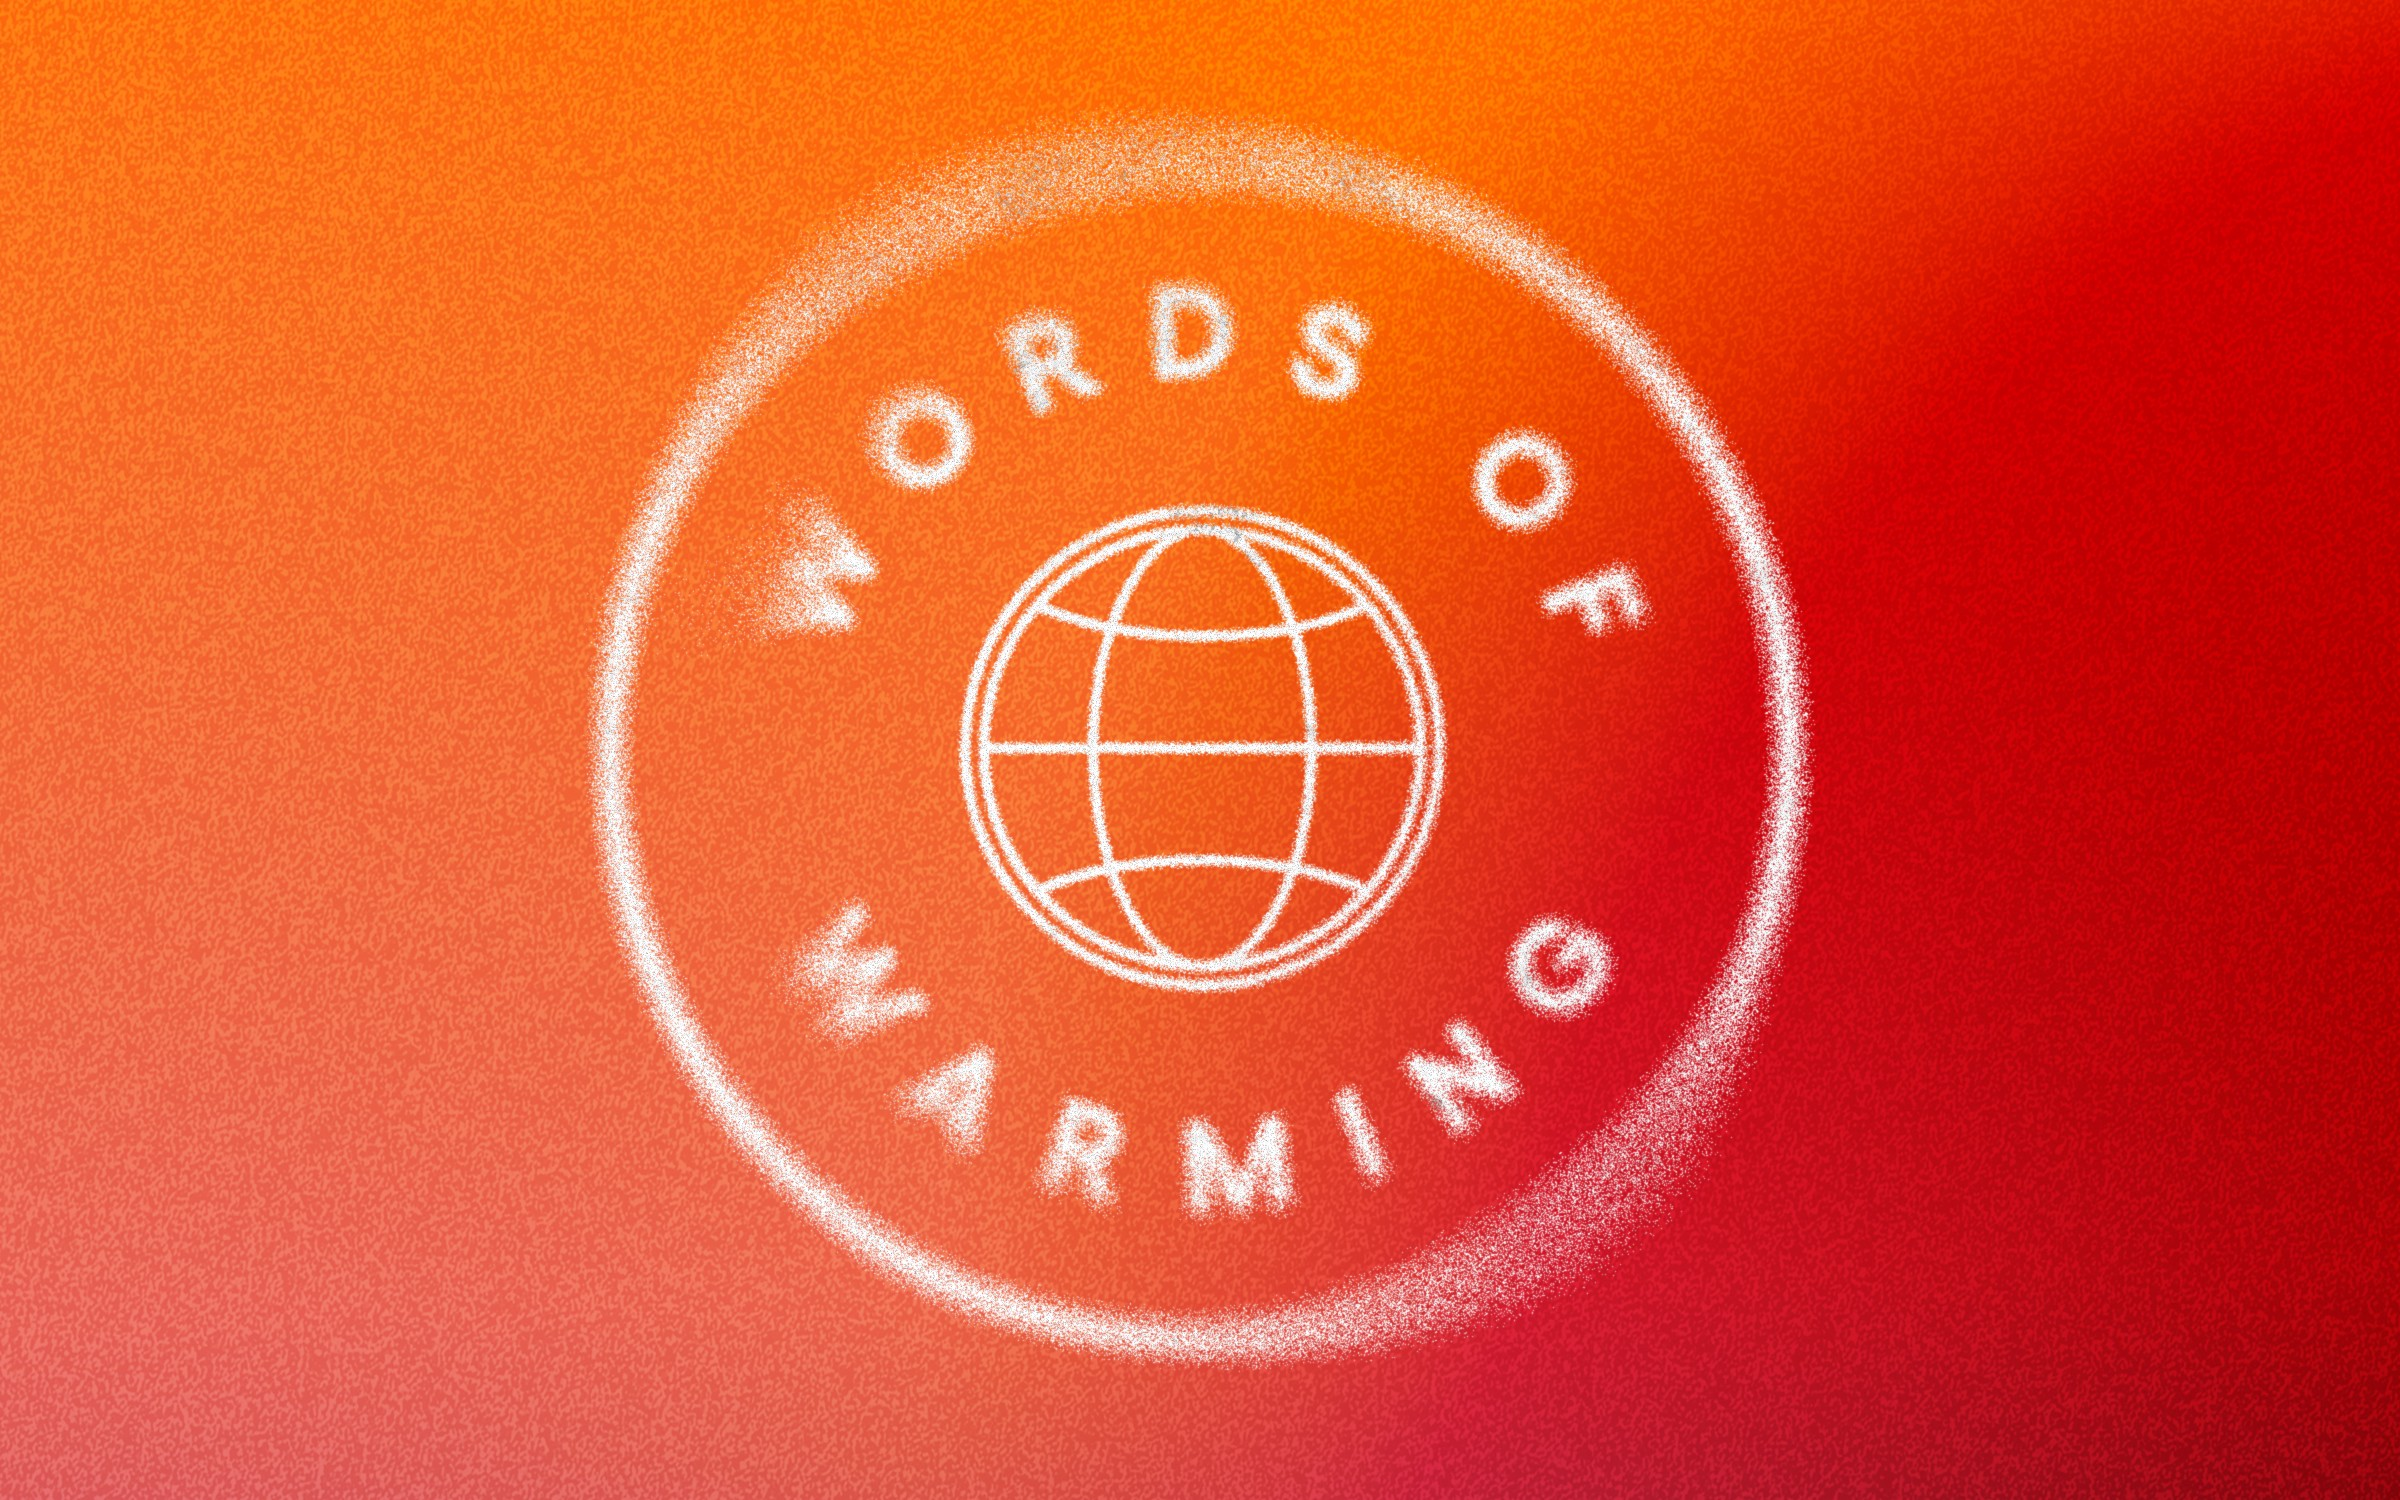 """""""Words of Warming"""" curved around a globe with meridians, all in a big circle. The background is an orange-to-red diagonal gradient. A radial motion blur effect and noise have been added."""